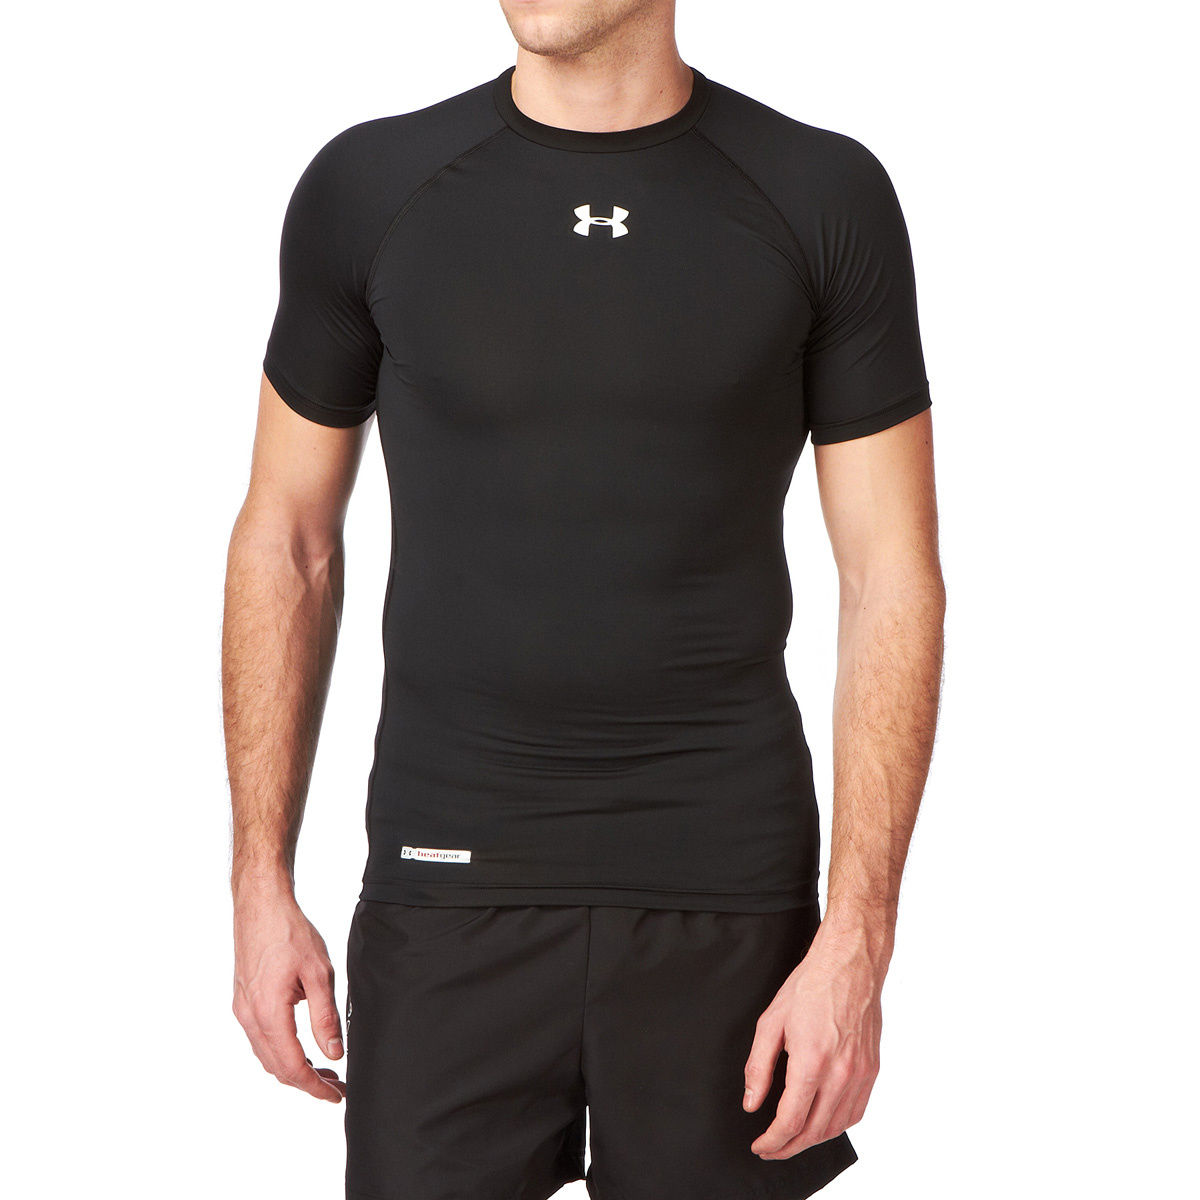 Best football compression shirts reviewed tested in 2017 for Under armor football shirts